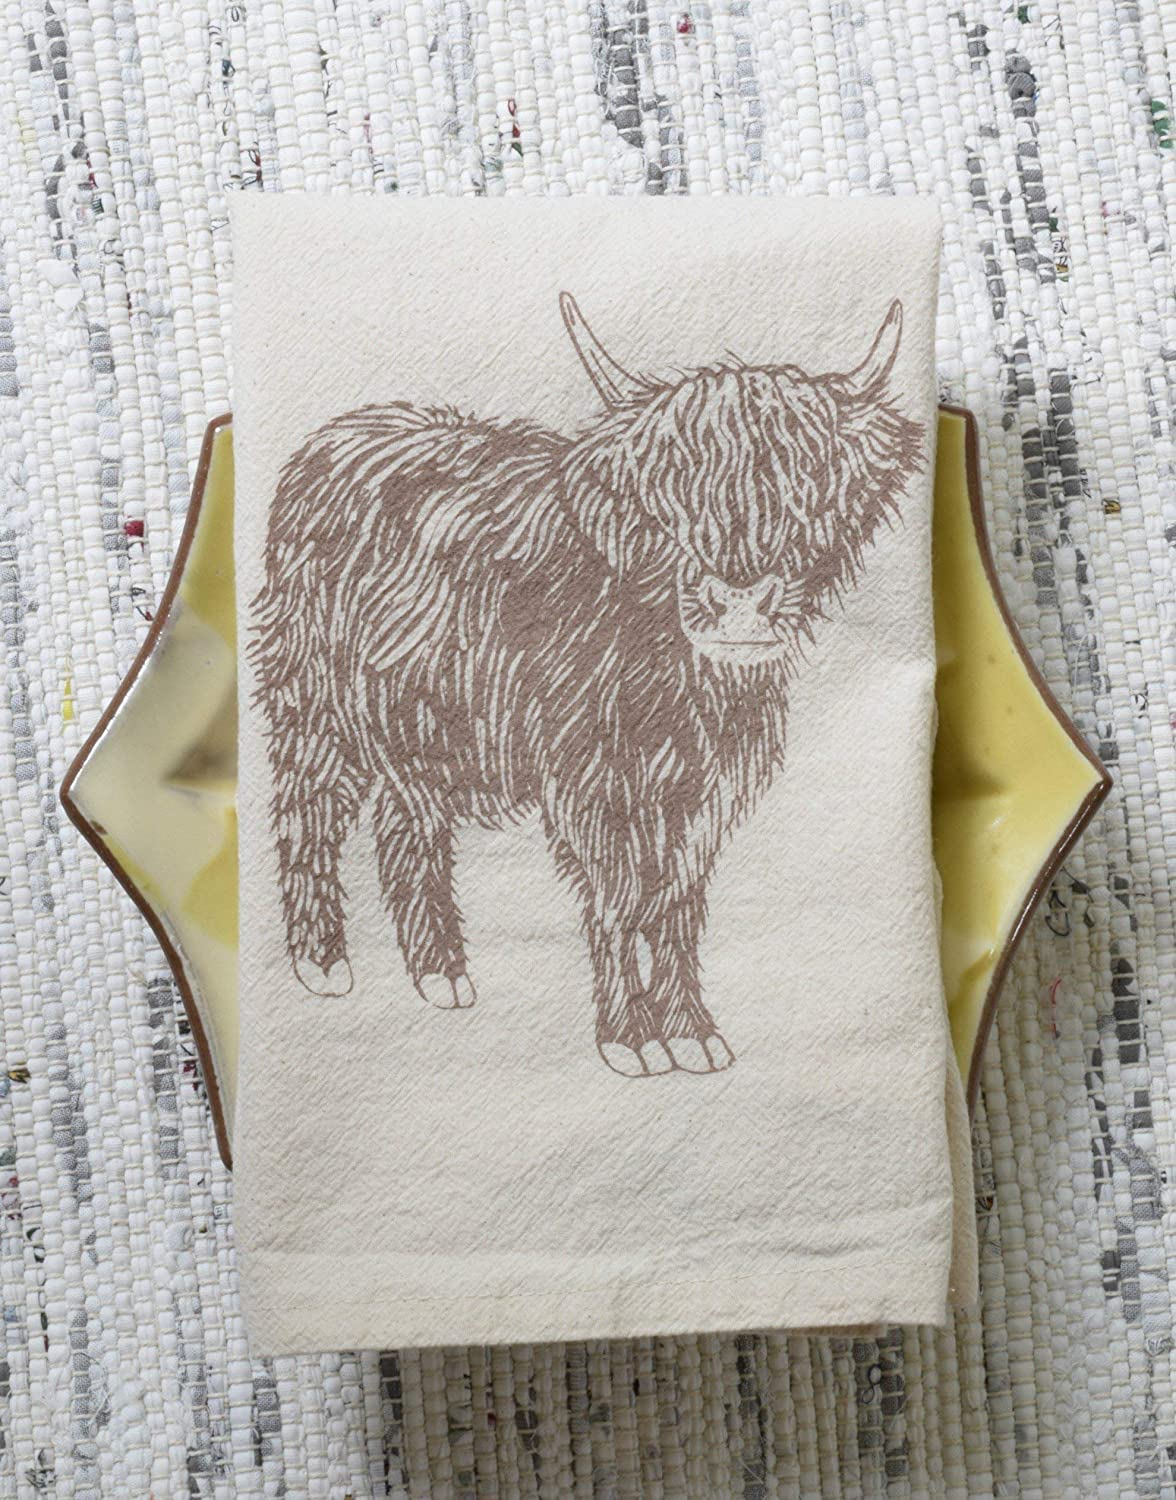 Cloth Napkins - Set of 4 - Cow Design in Mocha Brown - Organic Cotton - Scottish Highland